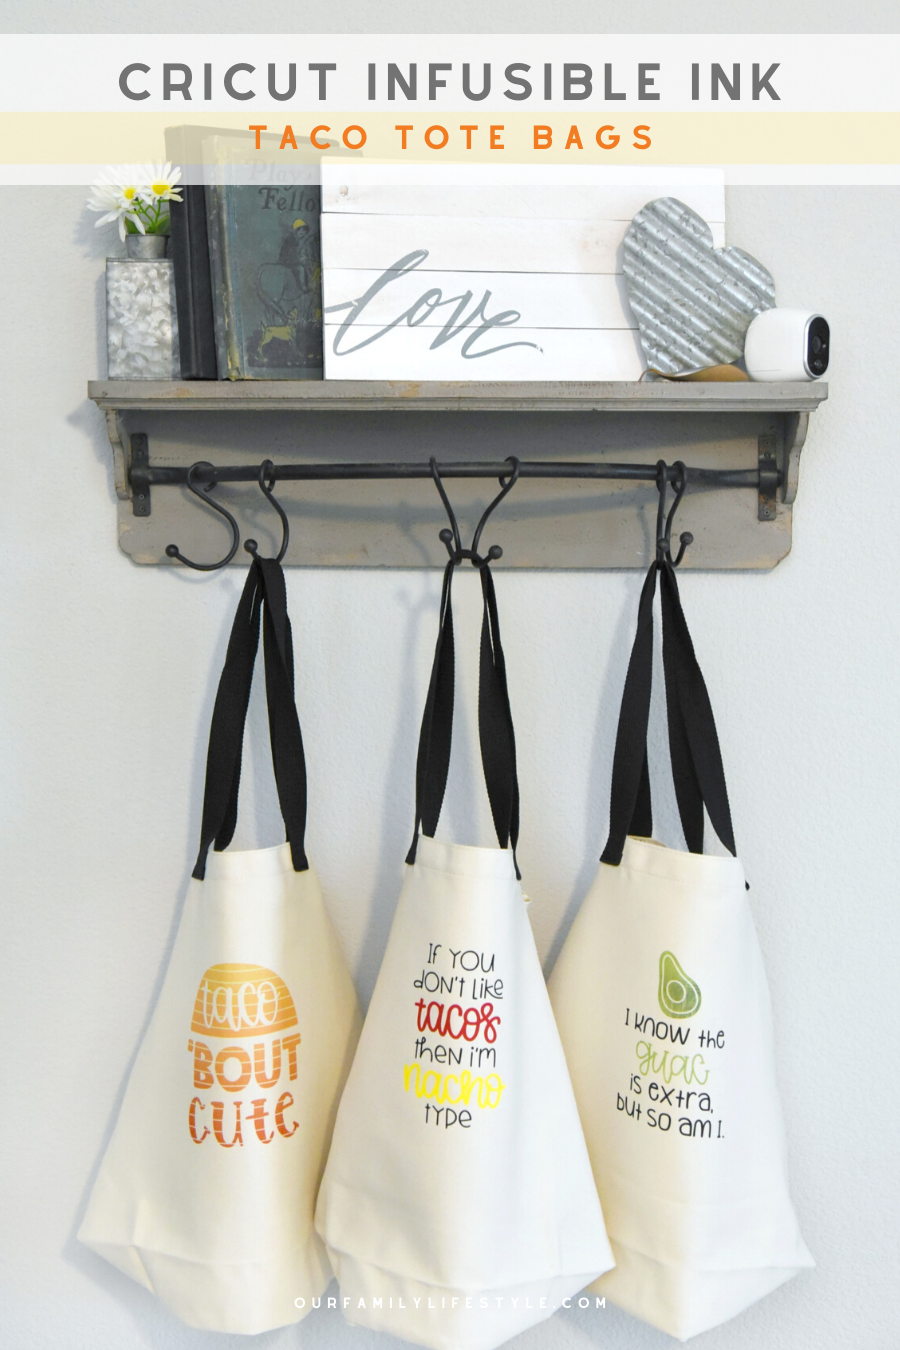 Let's Taco 'Bout Cricut Infusible Ink Tote Bags